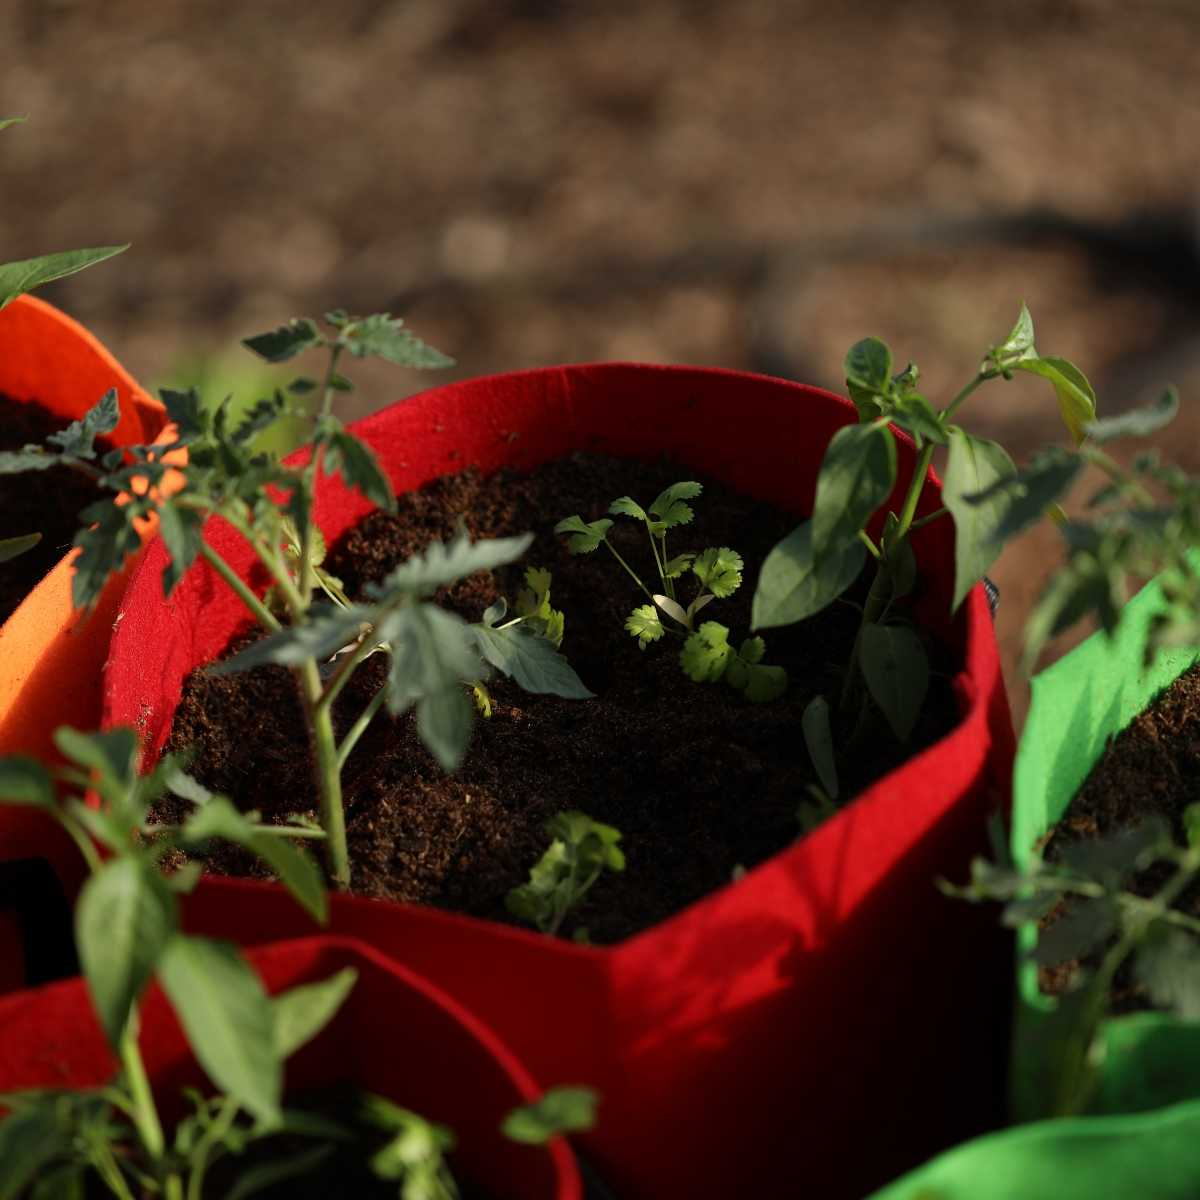 Grow Bags Advice For Growing Plants In Fabric Containers